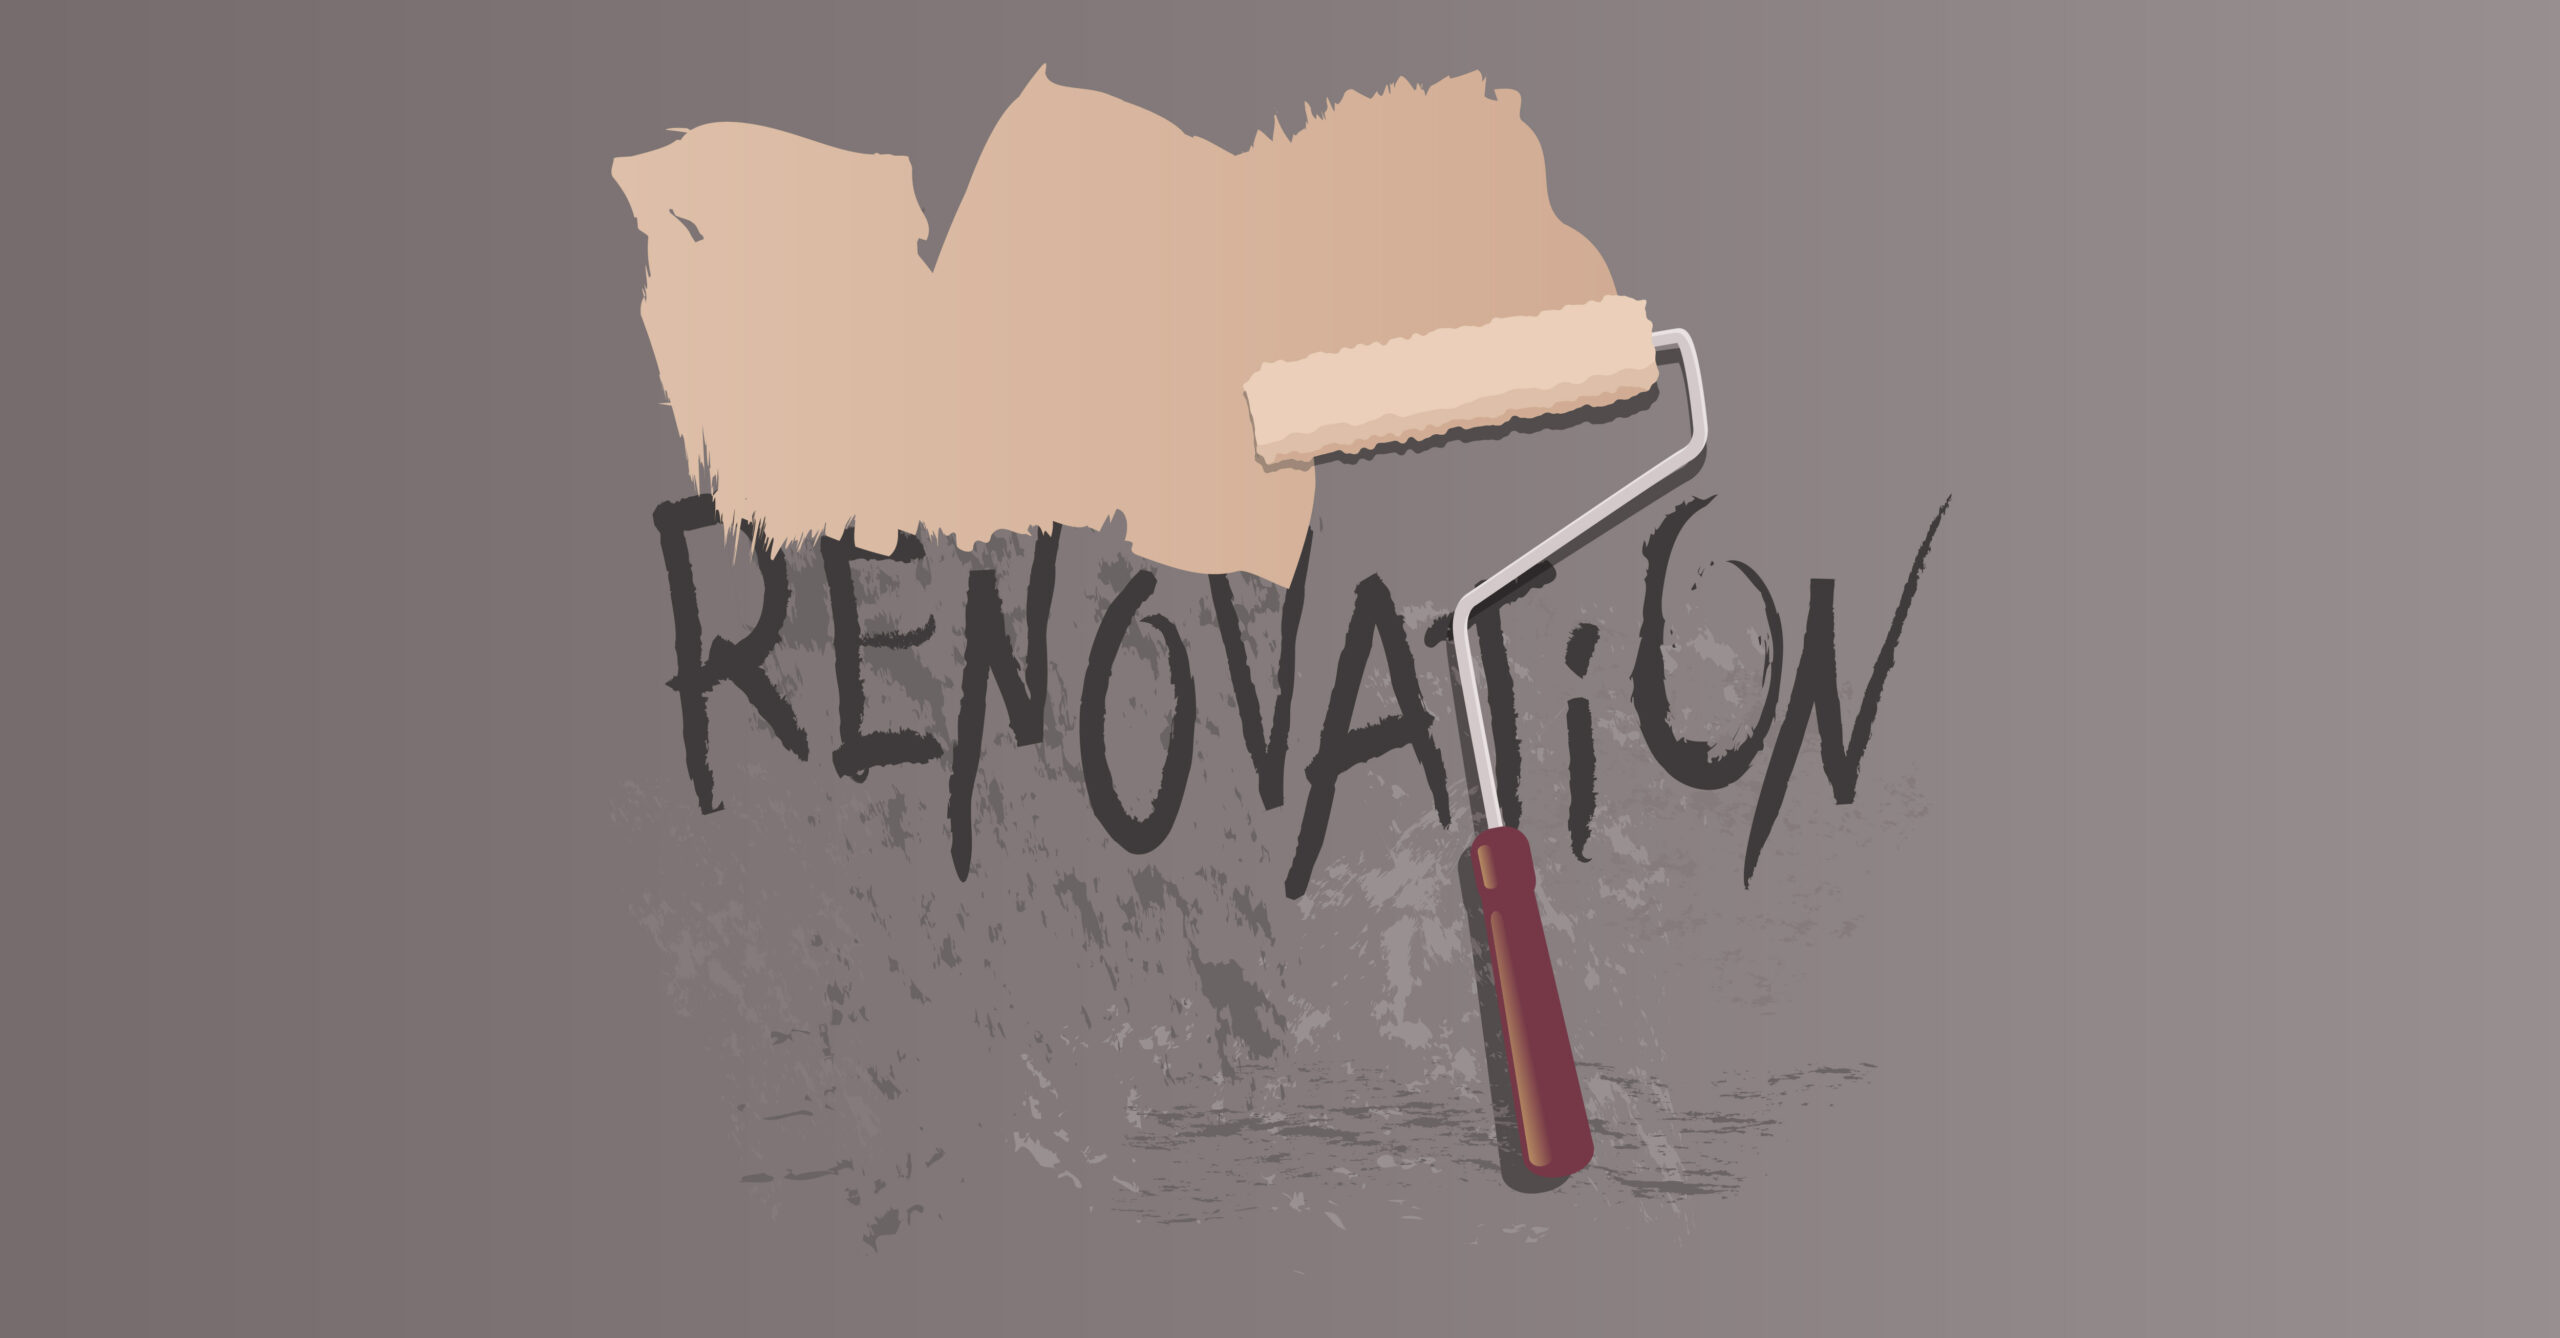 3 Tips For Renovating Your Business The Right Way